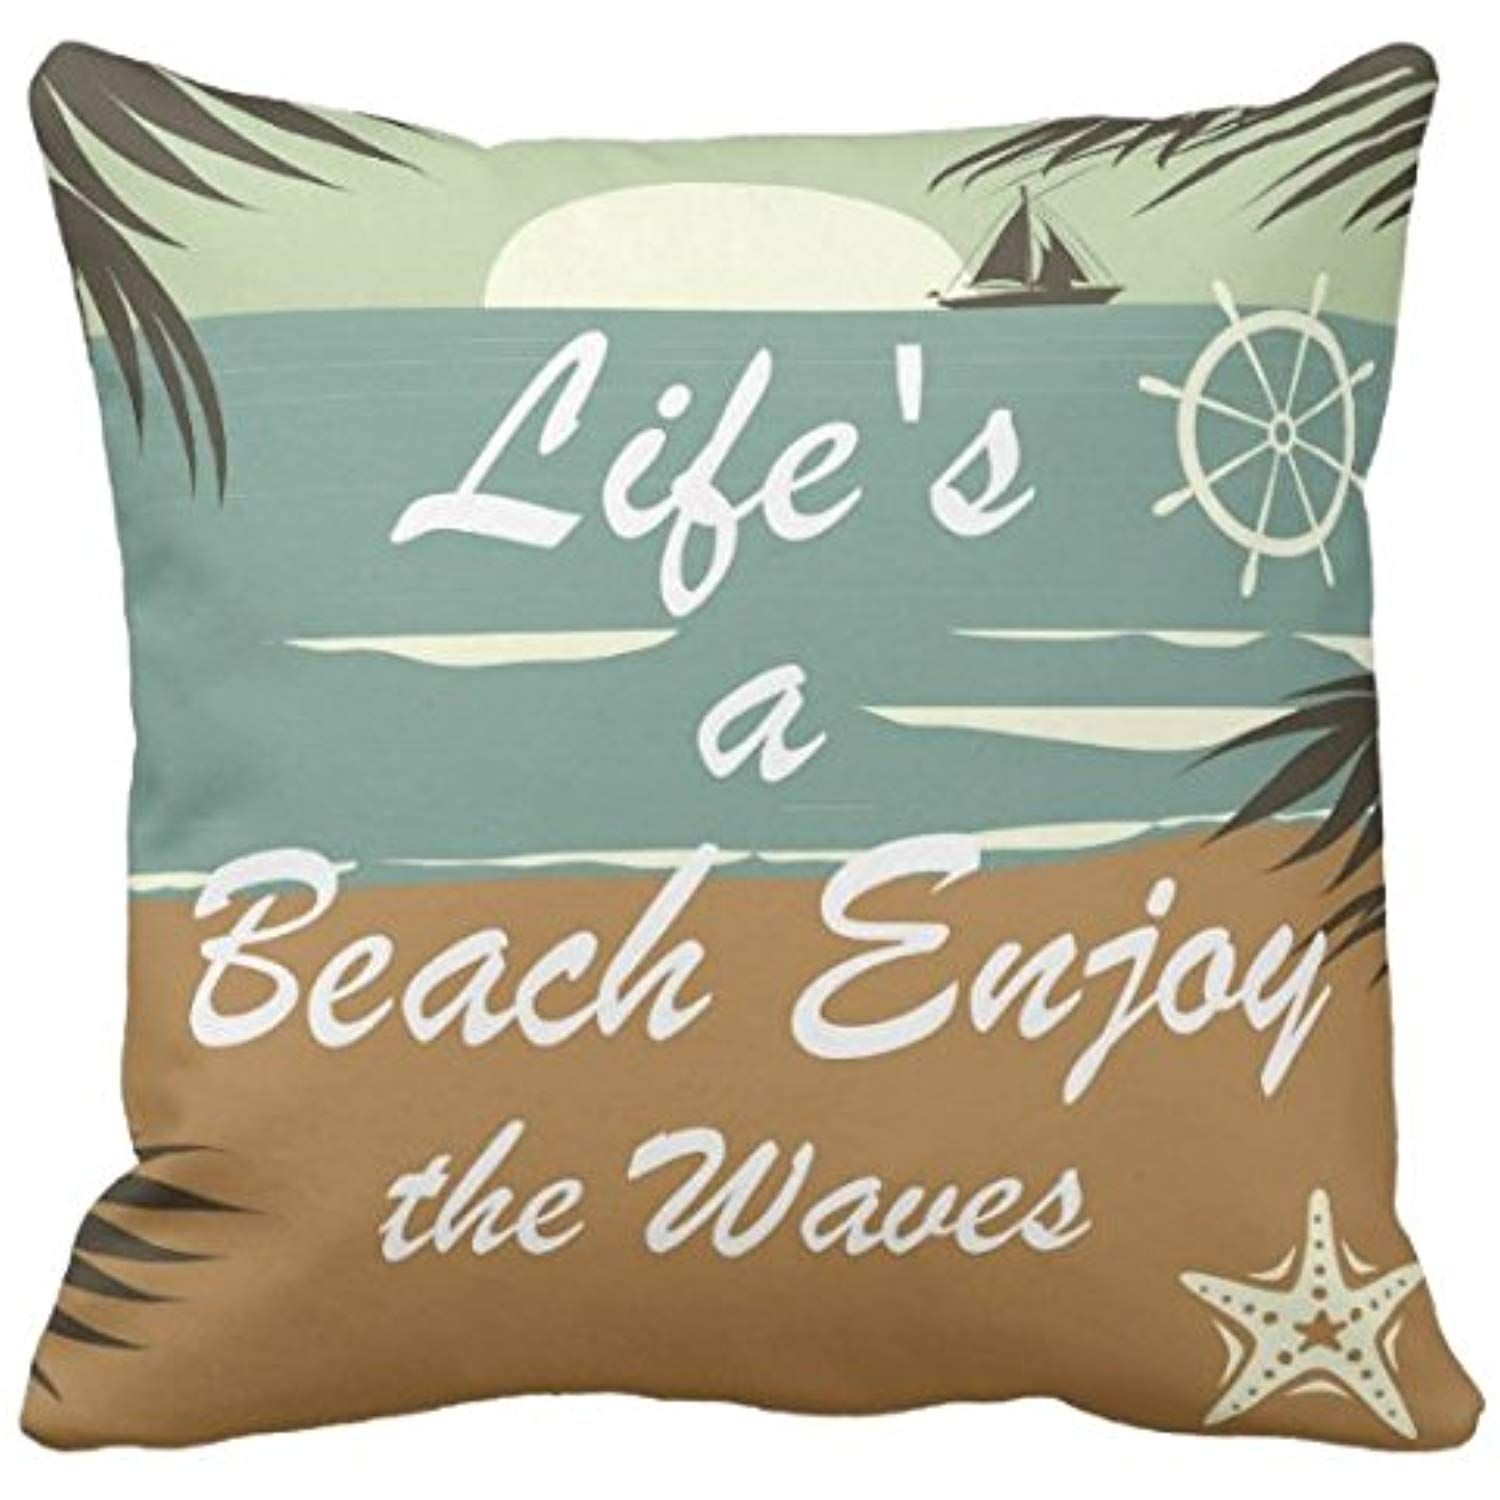 Kissenday 18X18 Inch Life's a Beach Enjoy the Waves Inspirational Quote Fun Saying Cotton Polyester Decorative Home Decor Sofa Couch Desk Chair Bedroom Car Birthday Gift Square Throw Pillow Case >>> Be sure to check out this awesome product. (This is an affiliate link)